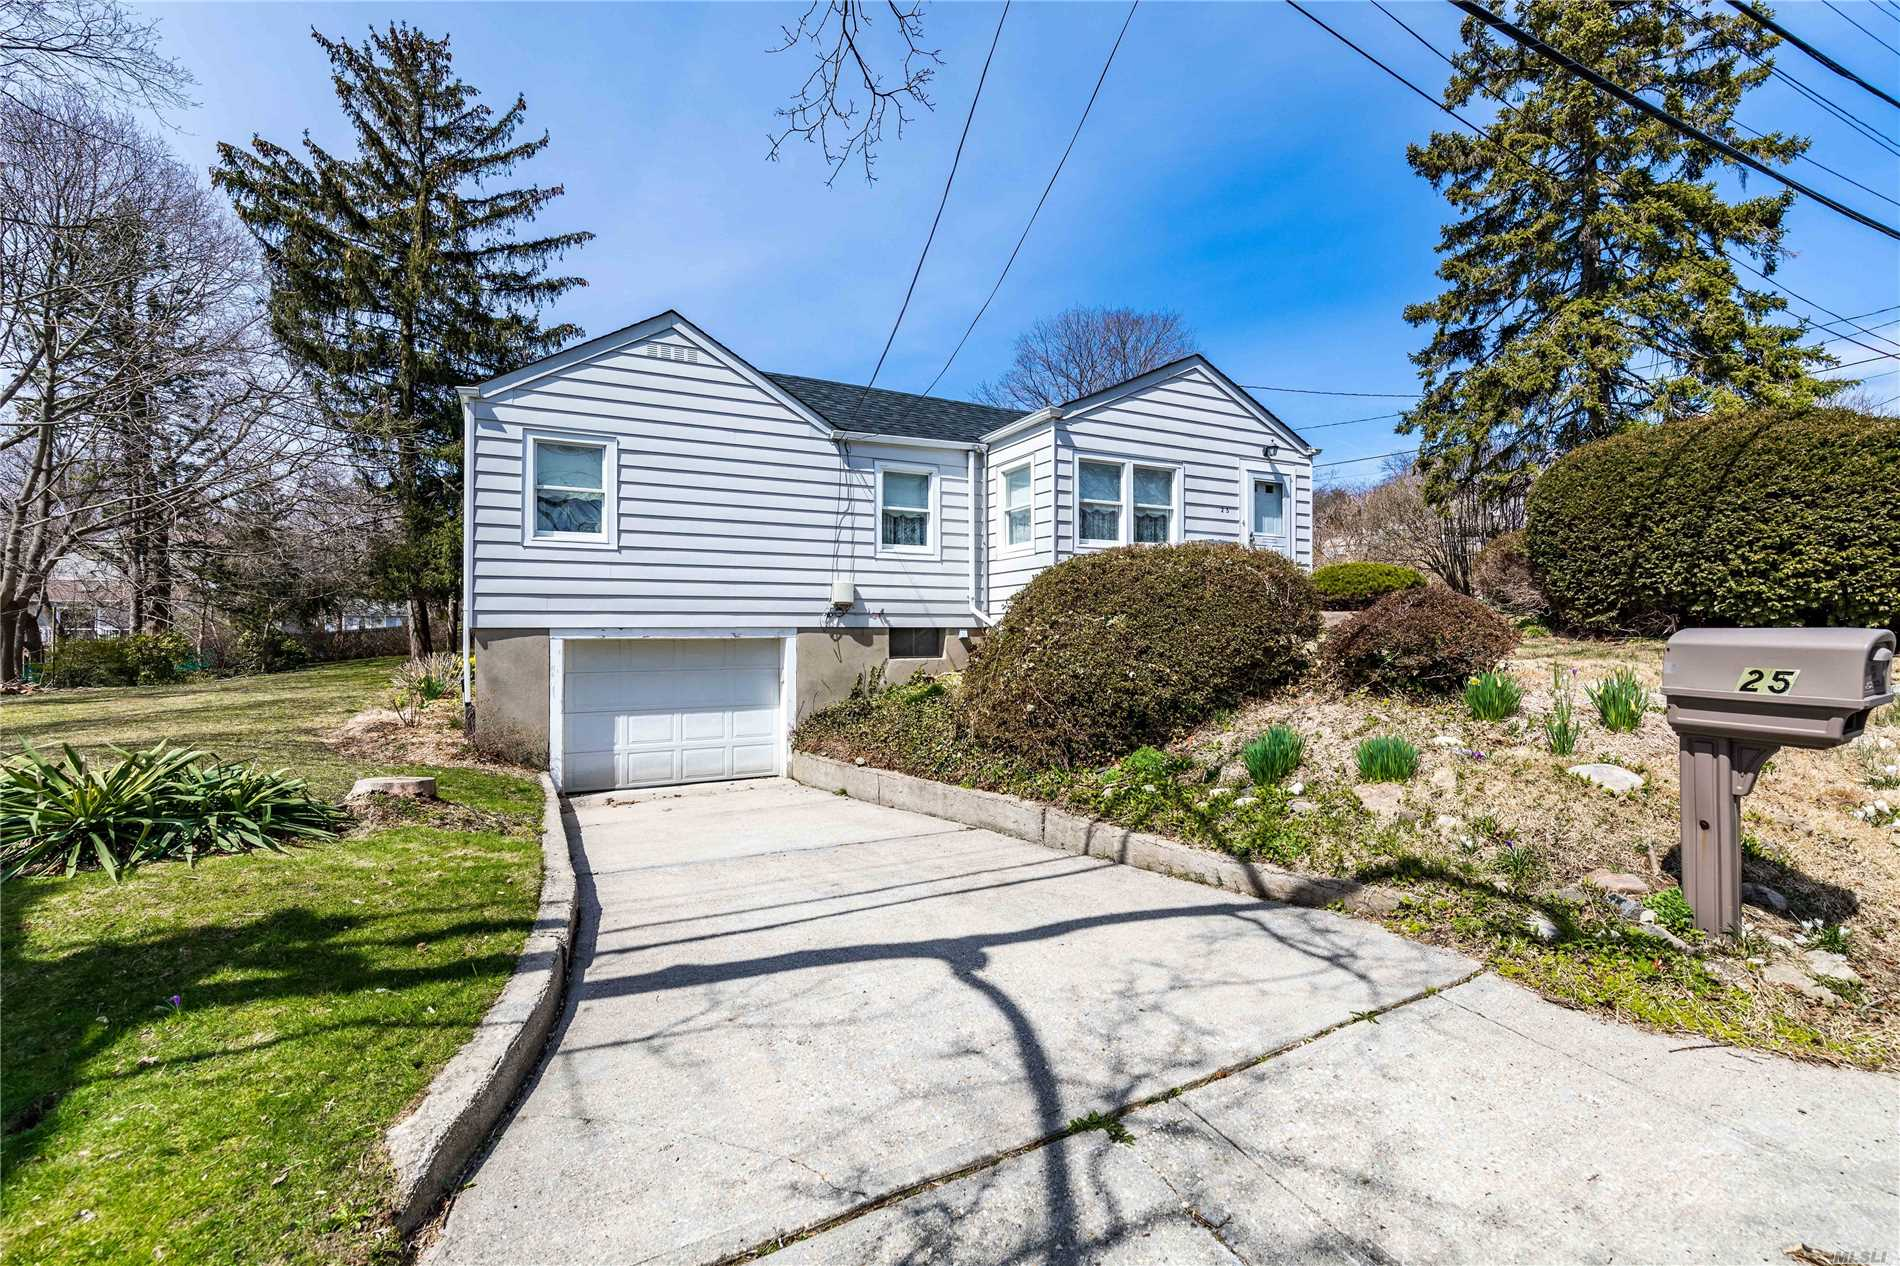 25 Valentine Ave - Huntington, New York